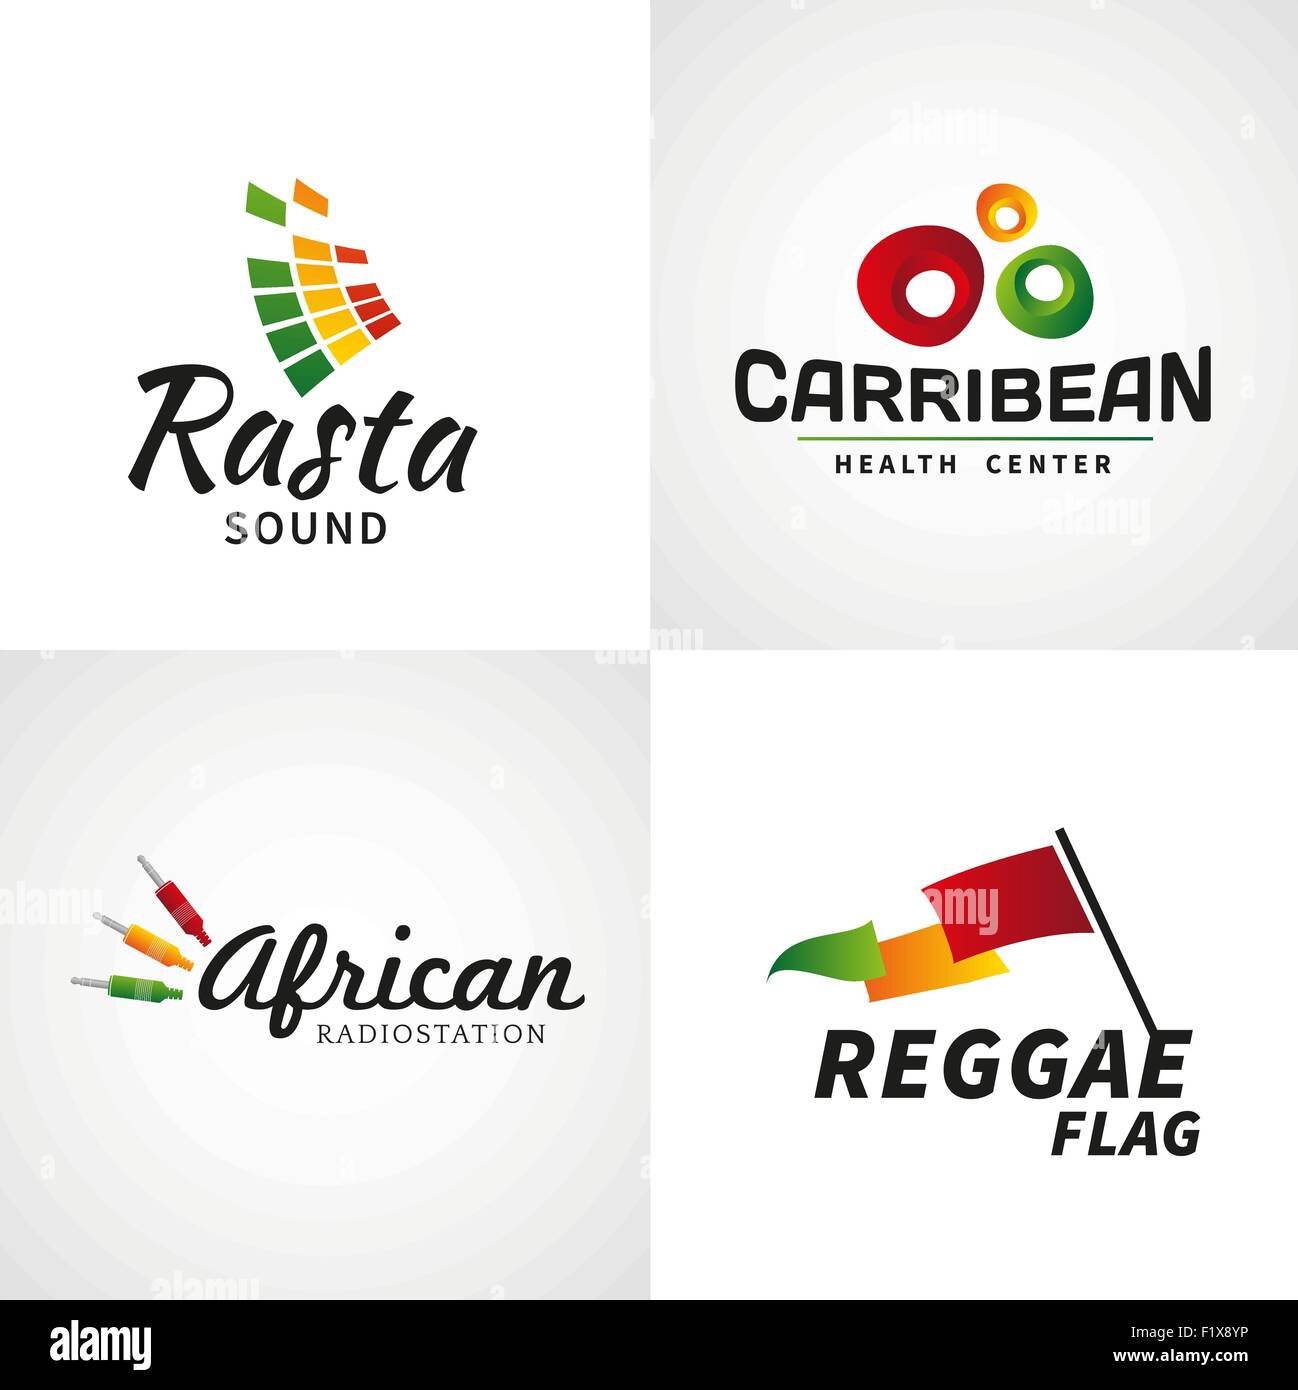 Reggae Music Jamaica Stock Vector Images - Alamy